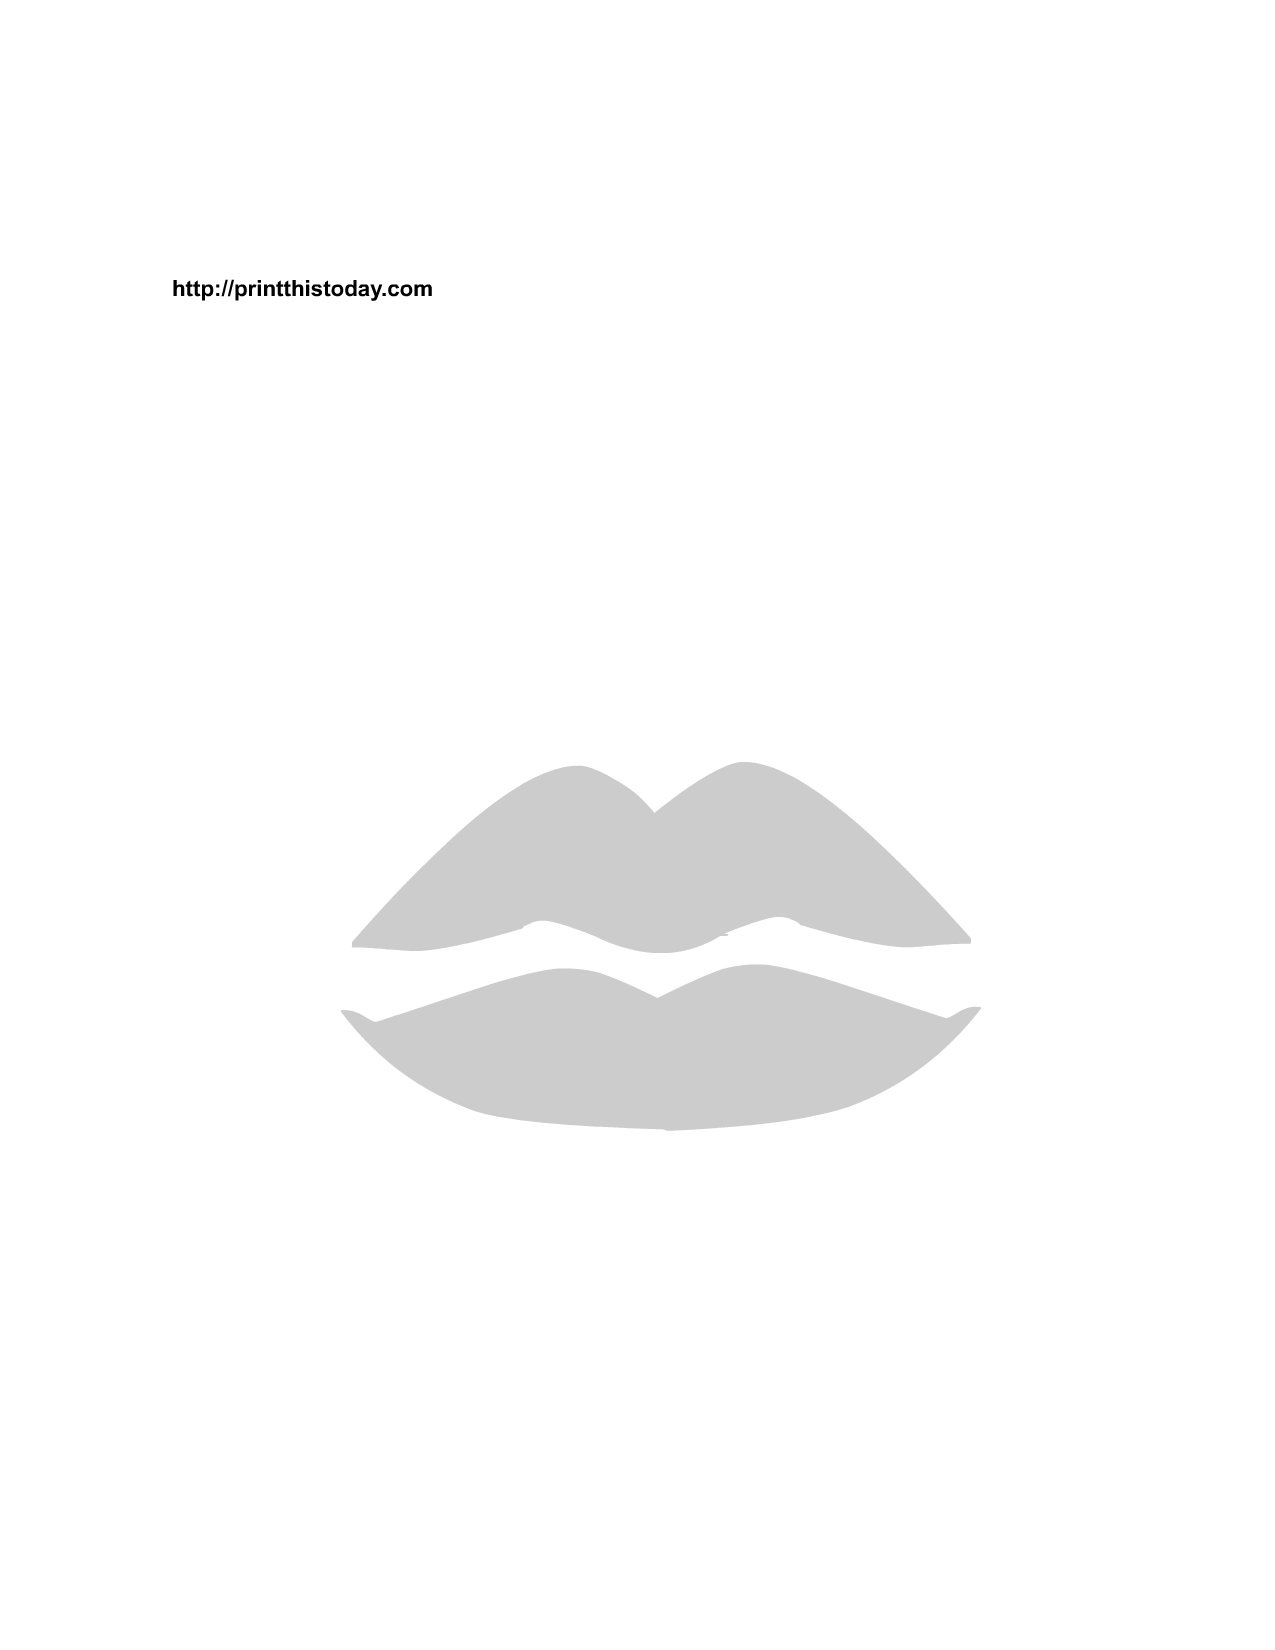 photograph about Lip Stencil Printable named Printable Valentine Stencils